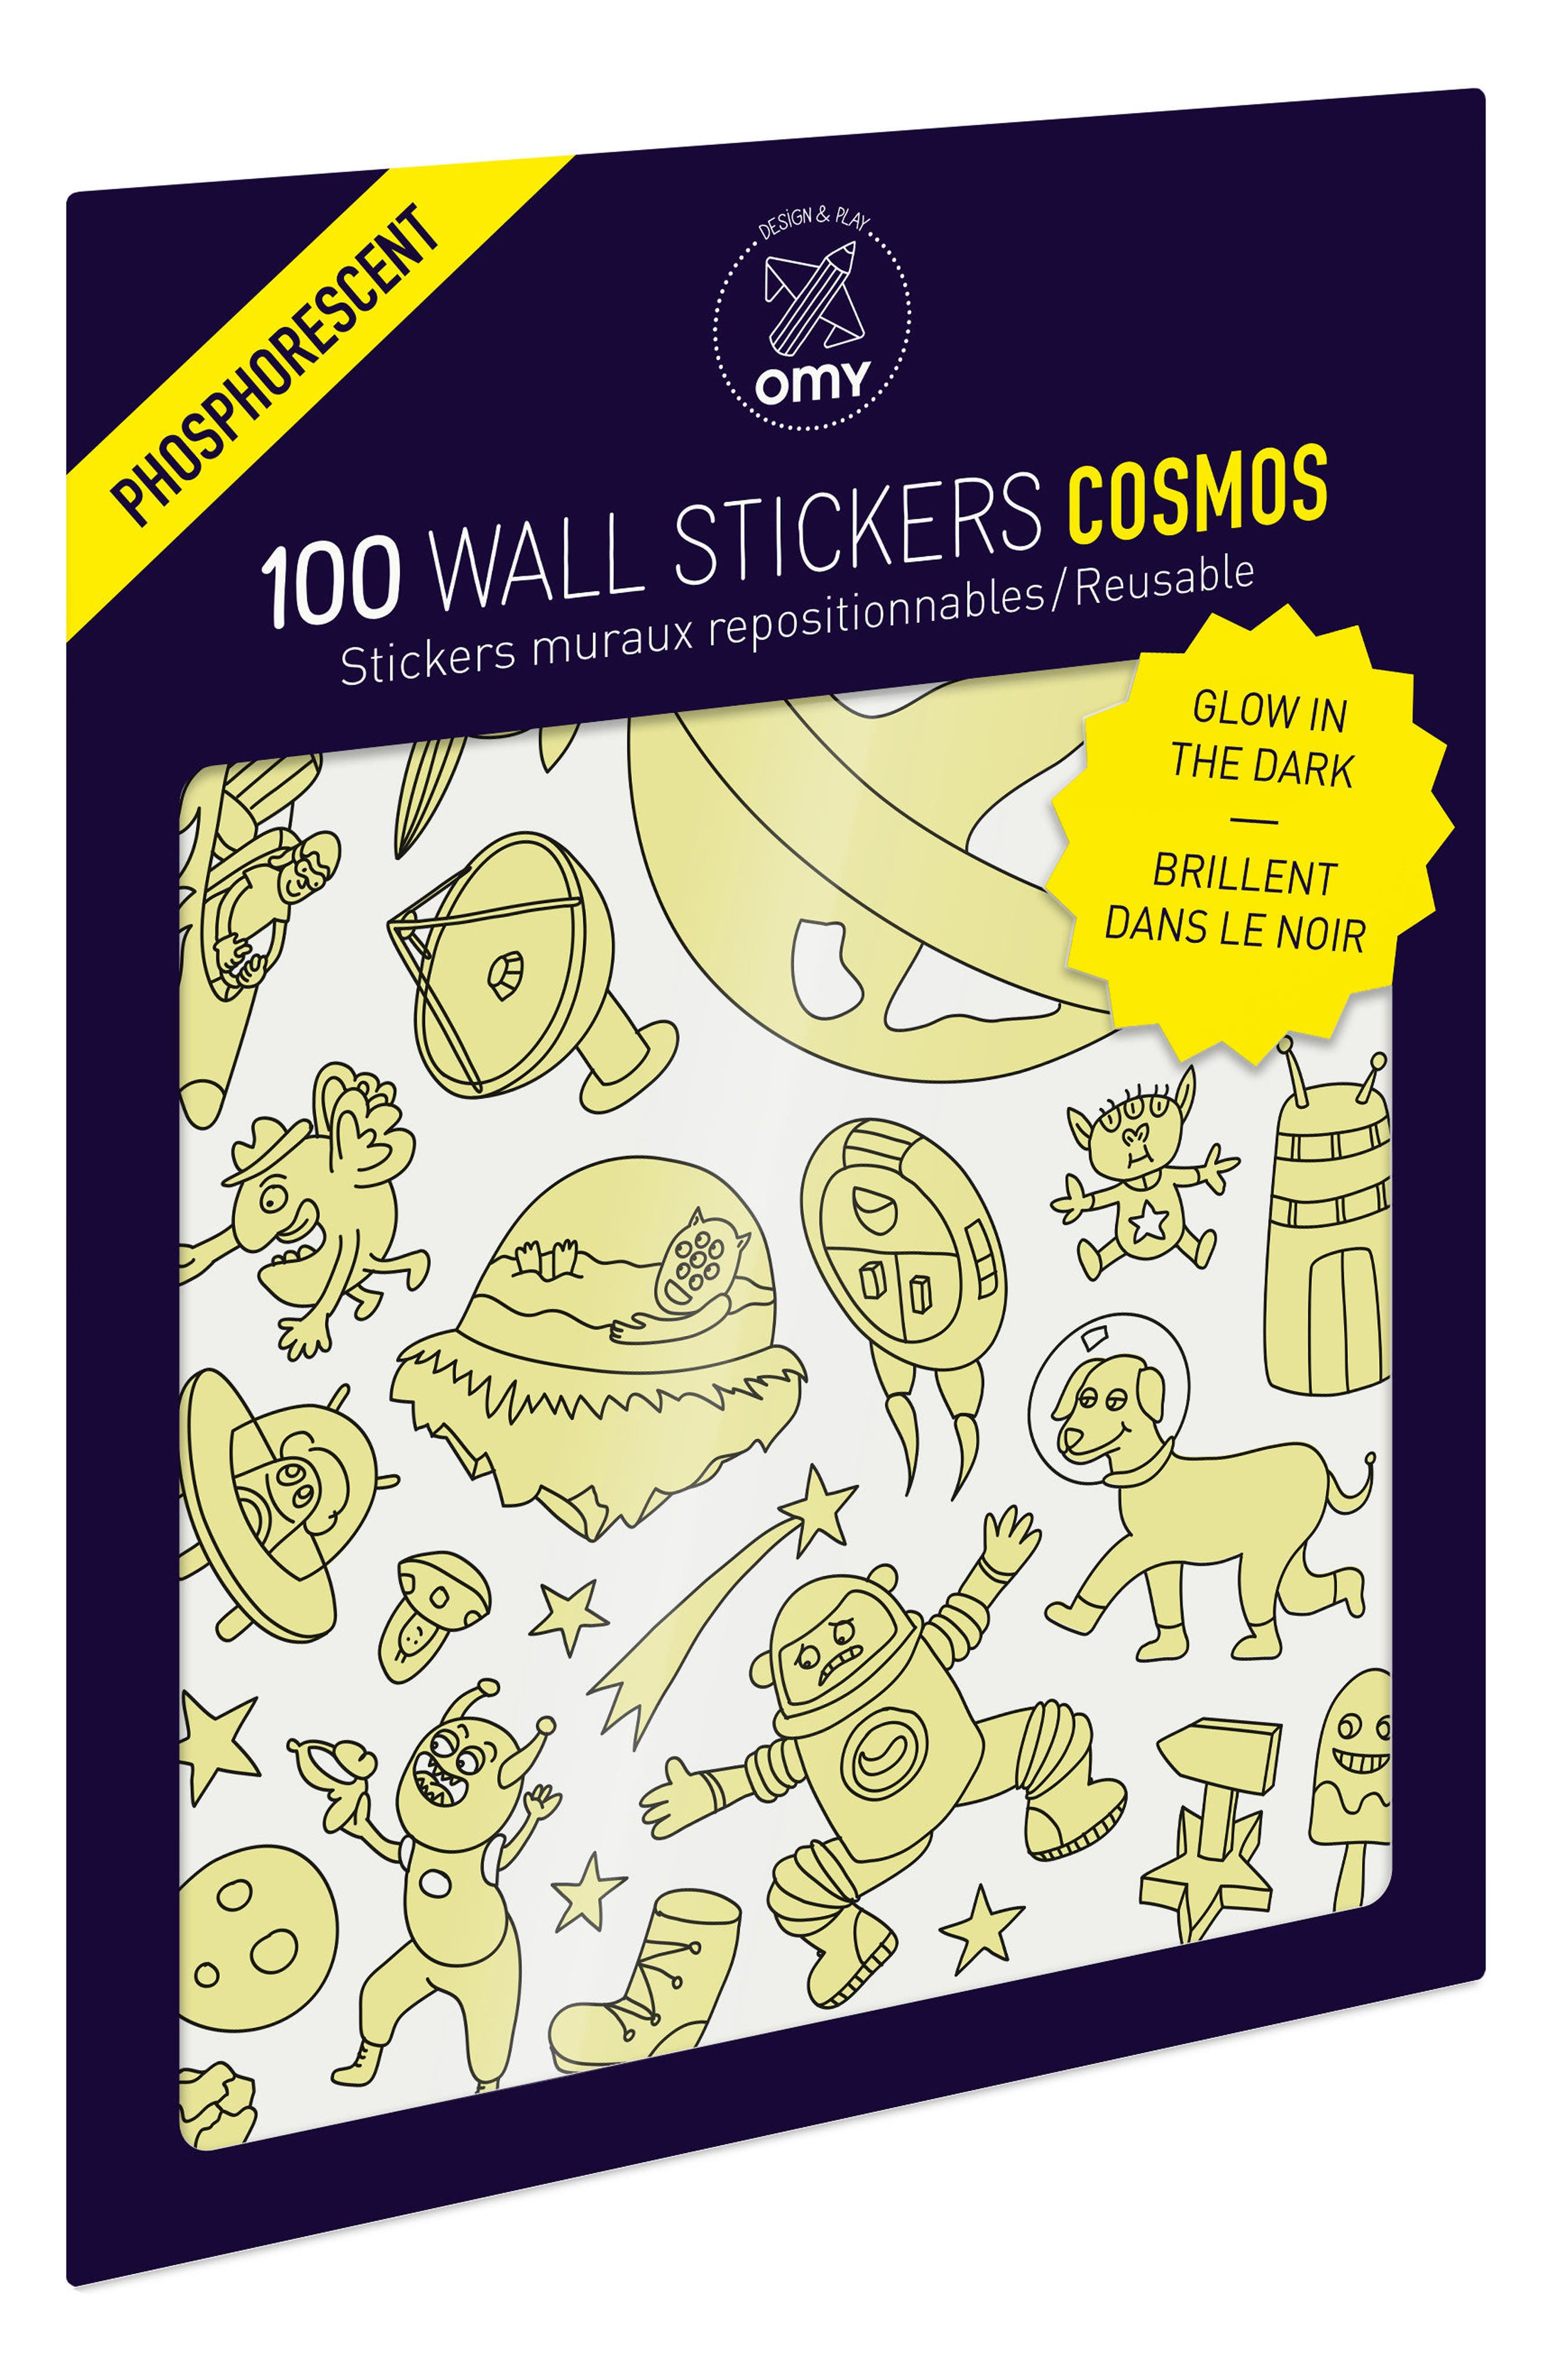 Alternate Image 1 Selected - OMY Set of 100 Cosmos Glow in the Dark Wall Stickers